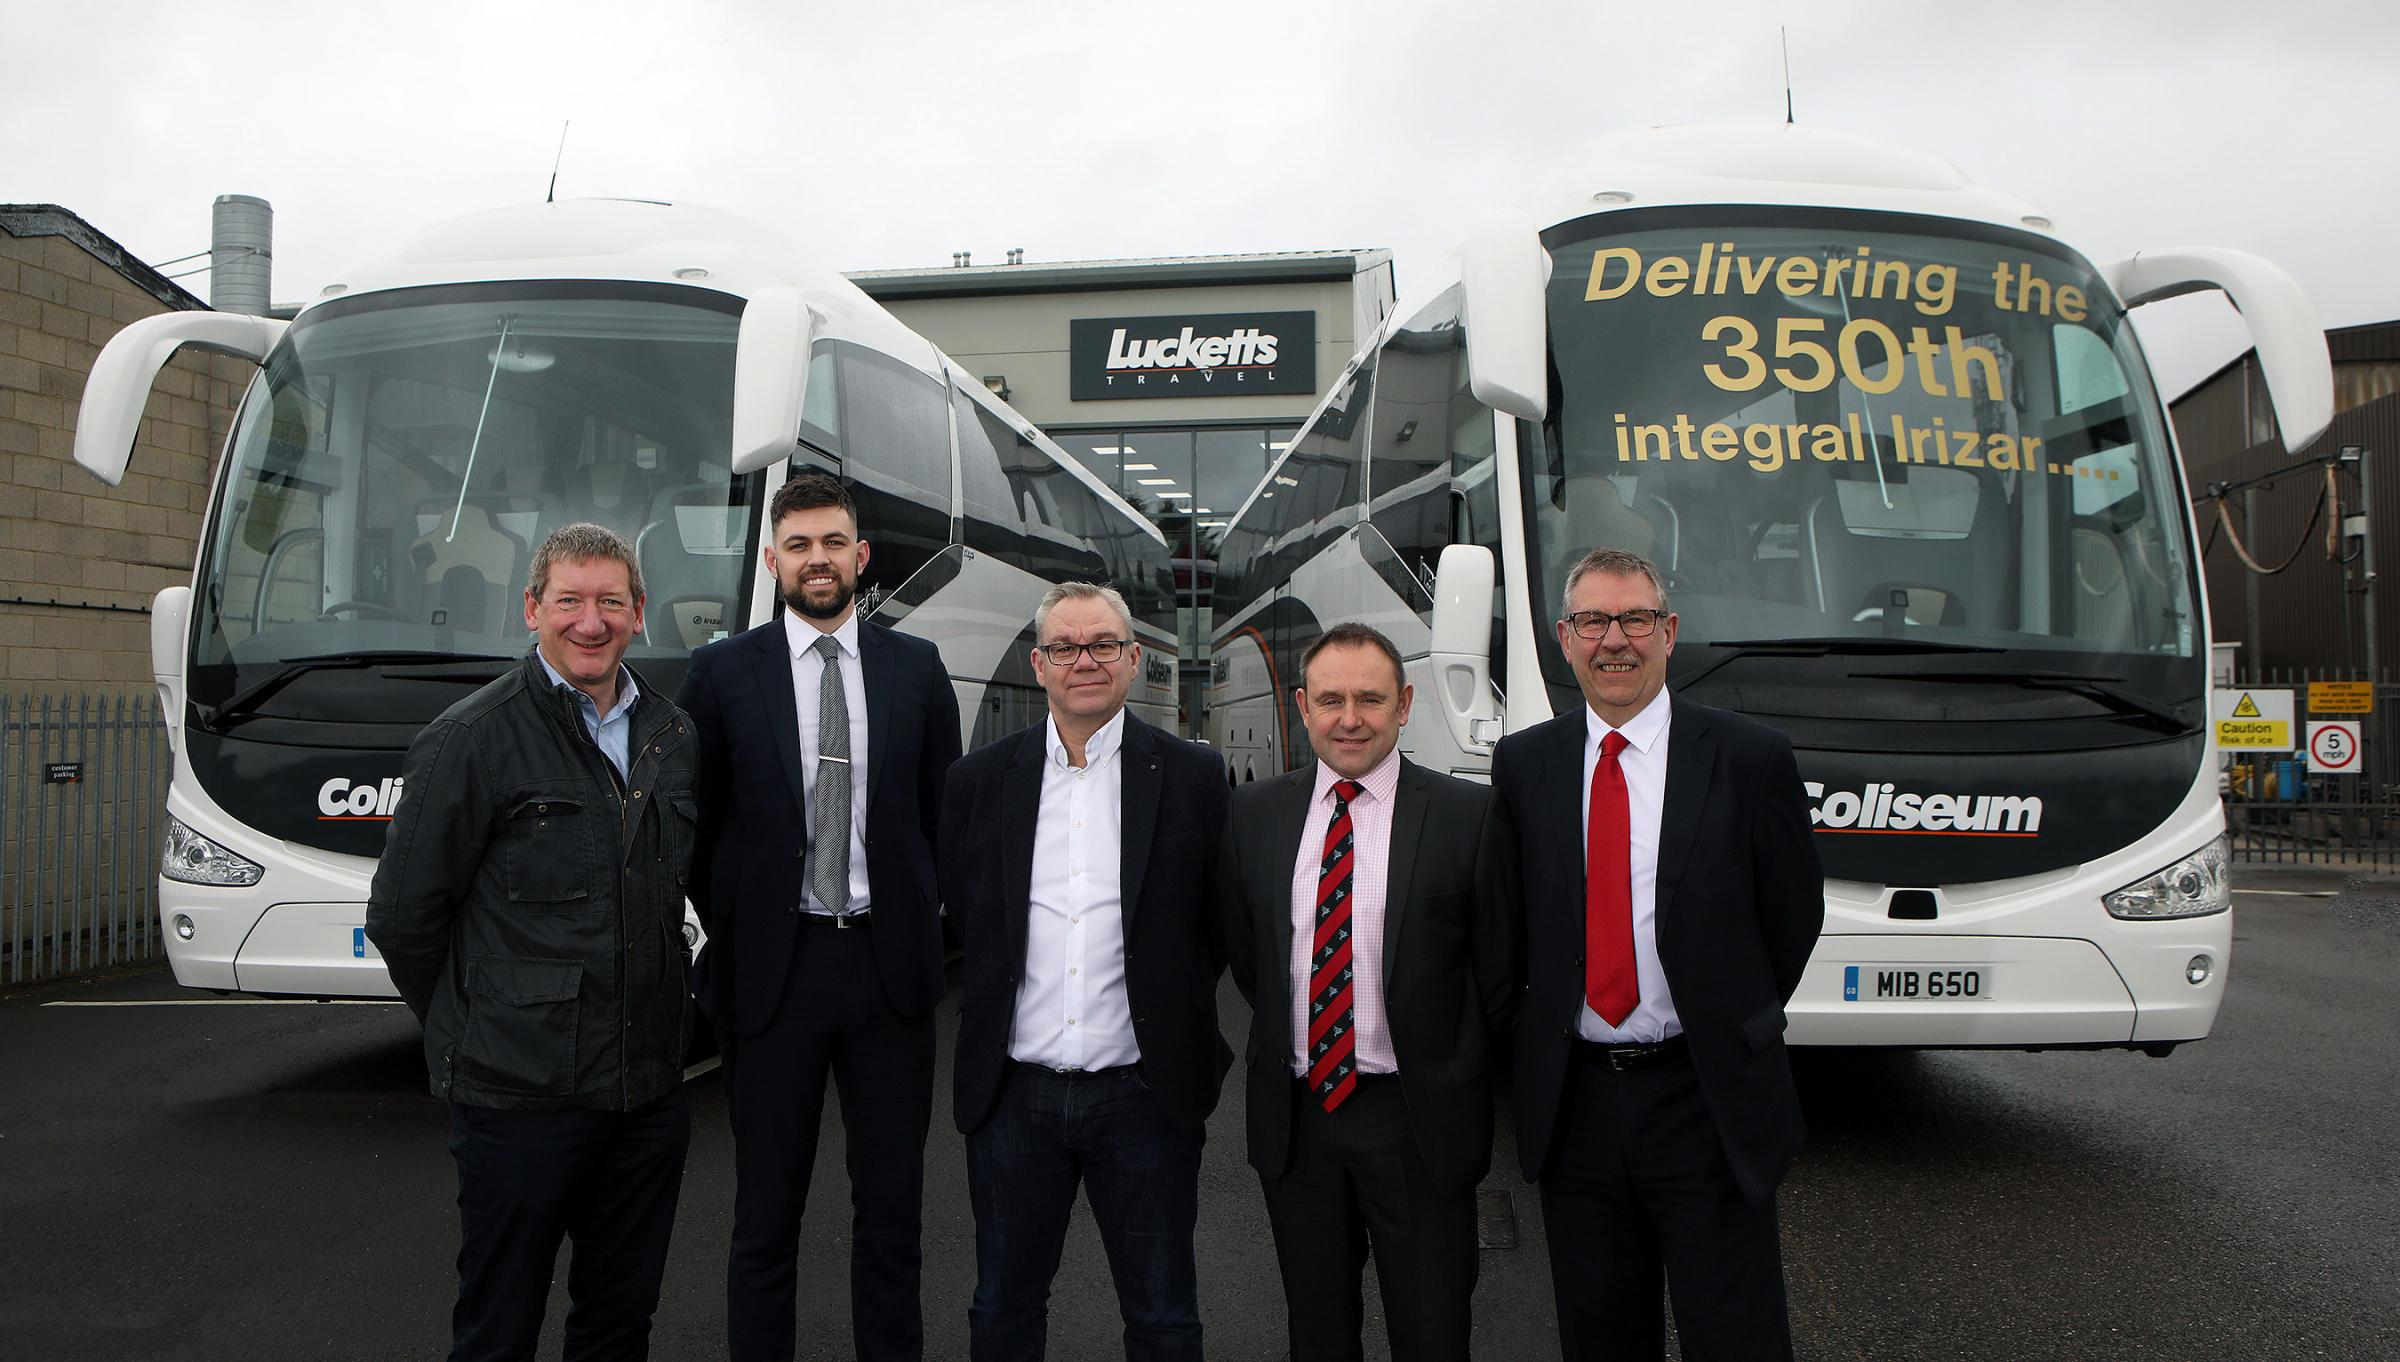 Ian Luckett, director at Lucketts Group and Coliseum Coachces, Charlie Disney, Regional Manager, Santander Corporate Bank, Steve O'Neill, Director, Irizar UK, Tony Lawman, managing director at Lucketts Group and Coliseum Coaches, Geoff Eavis, Santan